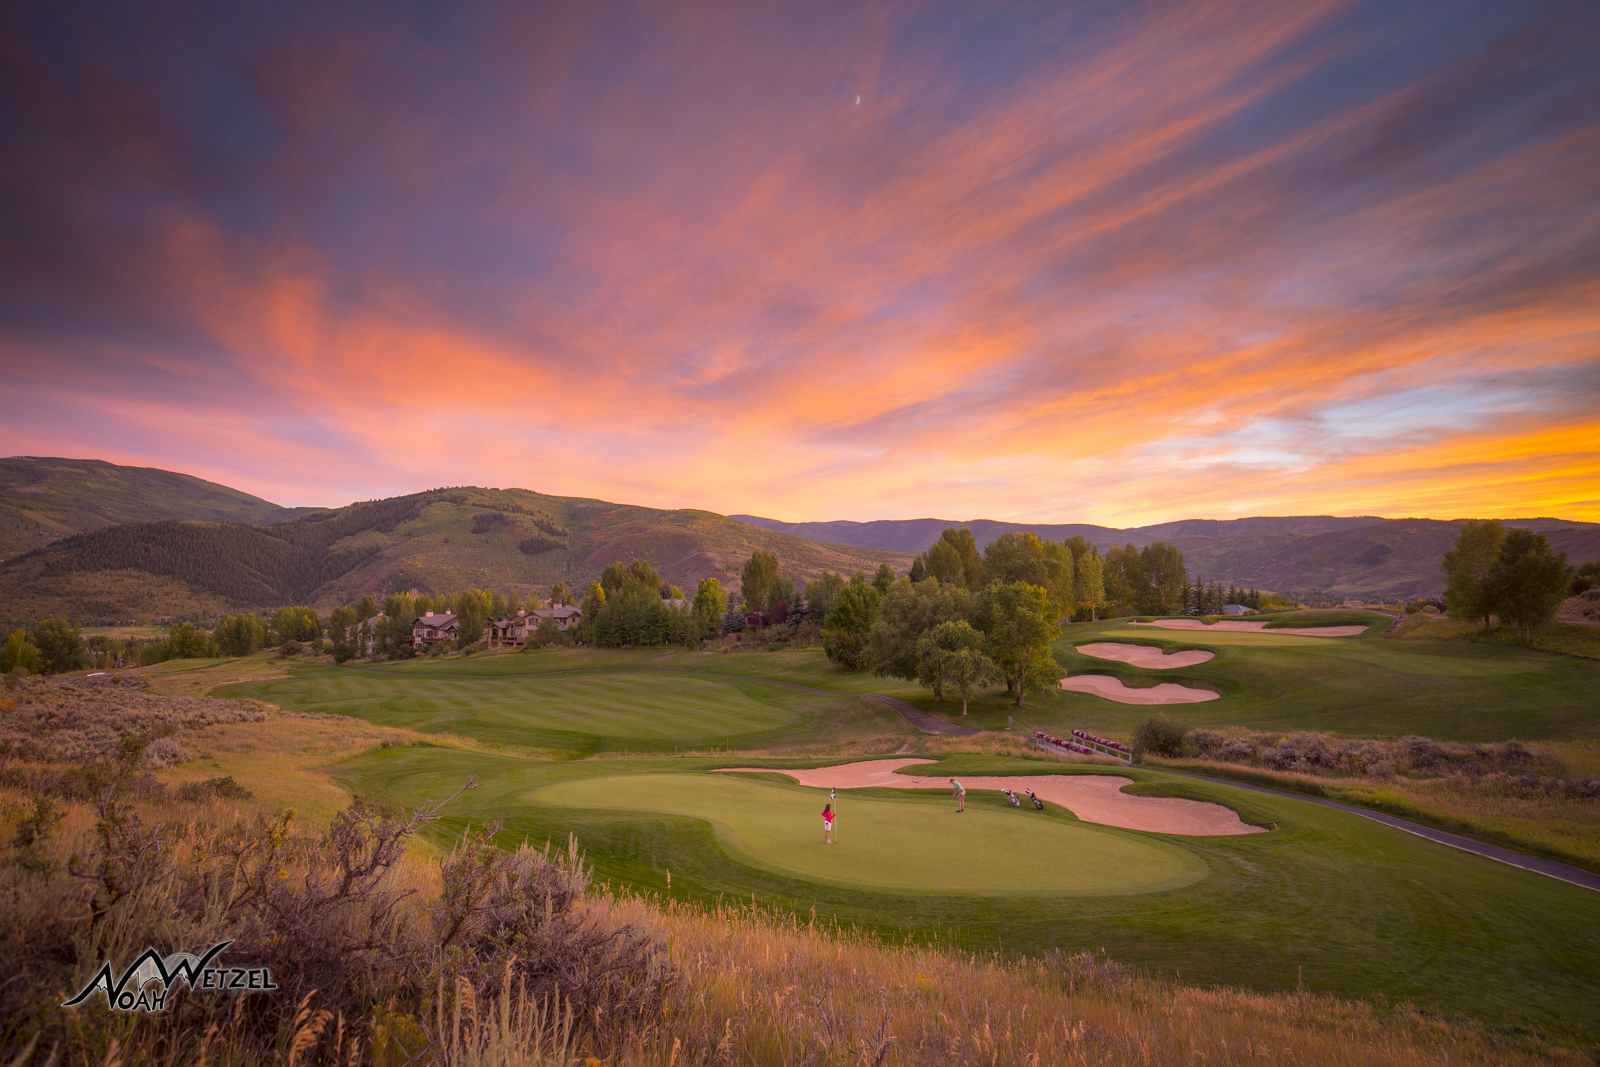 The beautiful 13th hole at the Sonnenalp Club in Vail, Colorado.